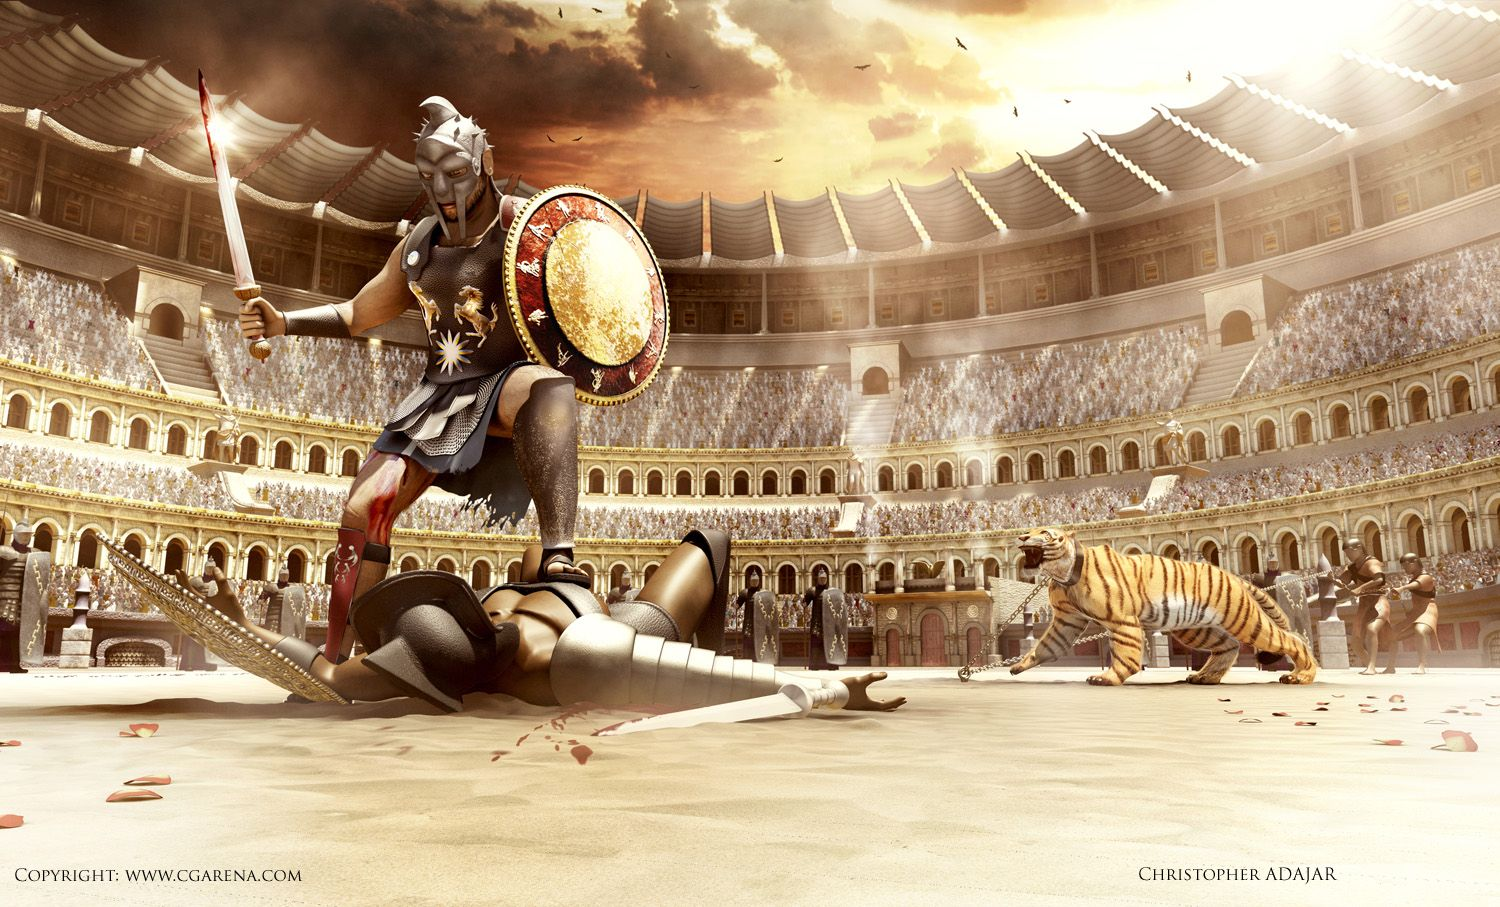 Gladiator Movie, Fan Art, CGArena 2nd Place Winner